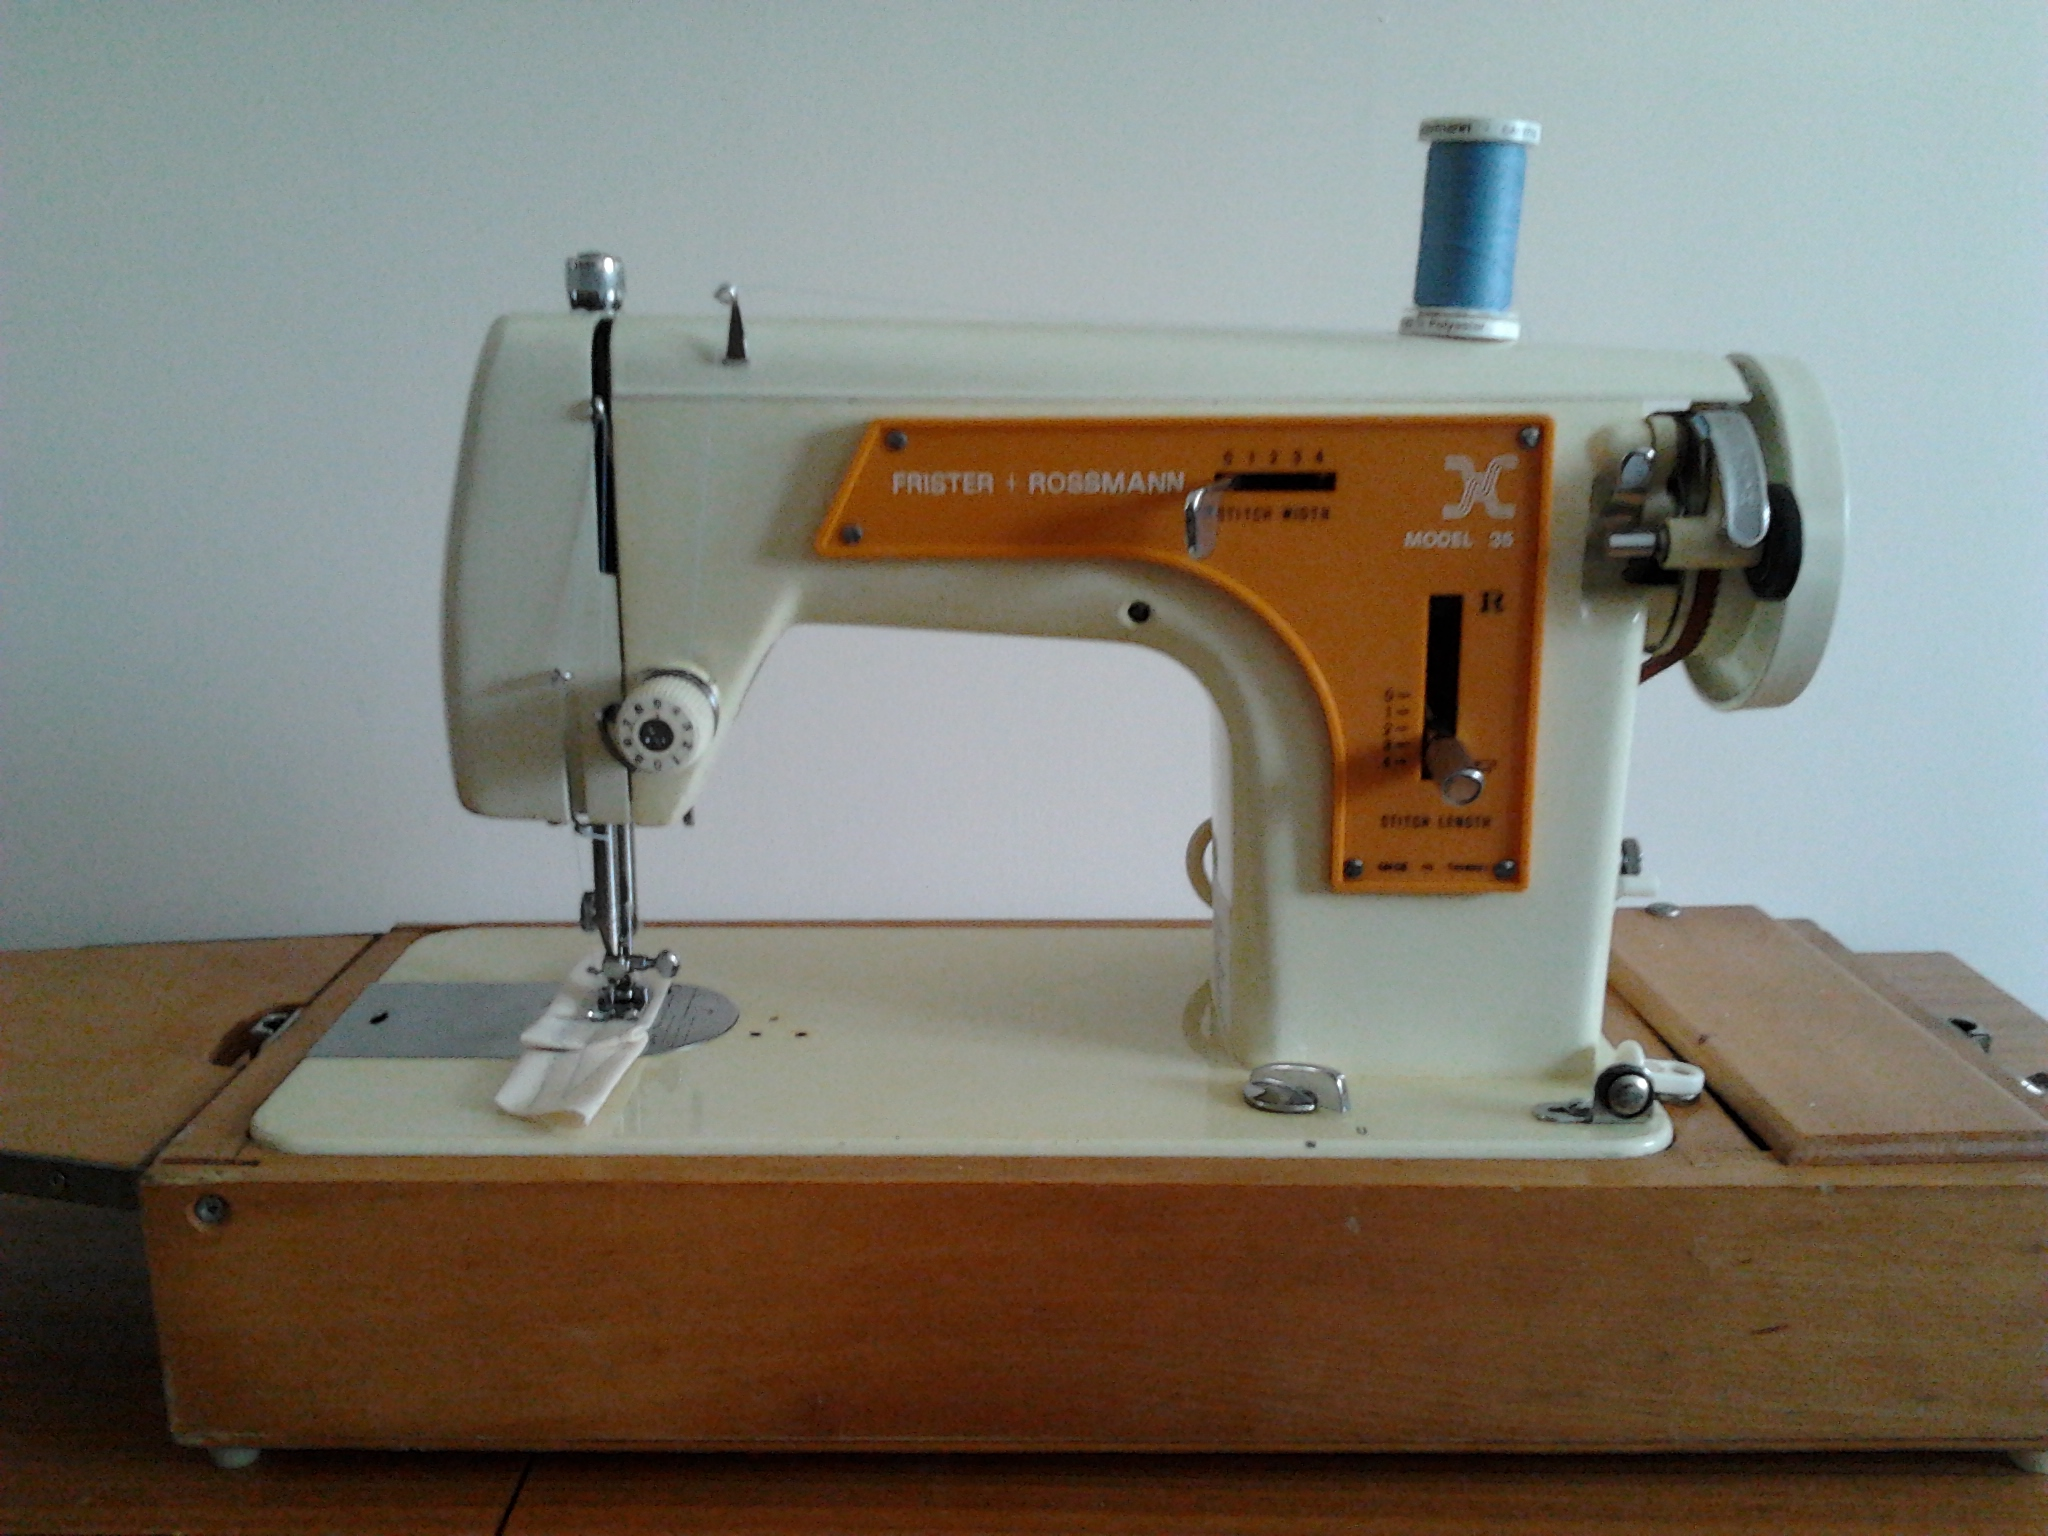 Frister and Rossman 35 Sewing Machine